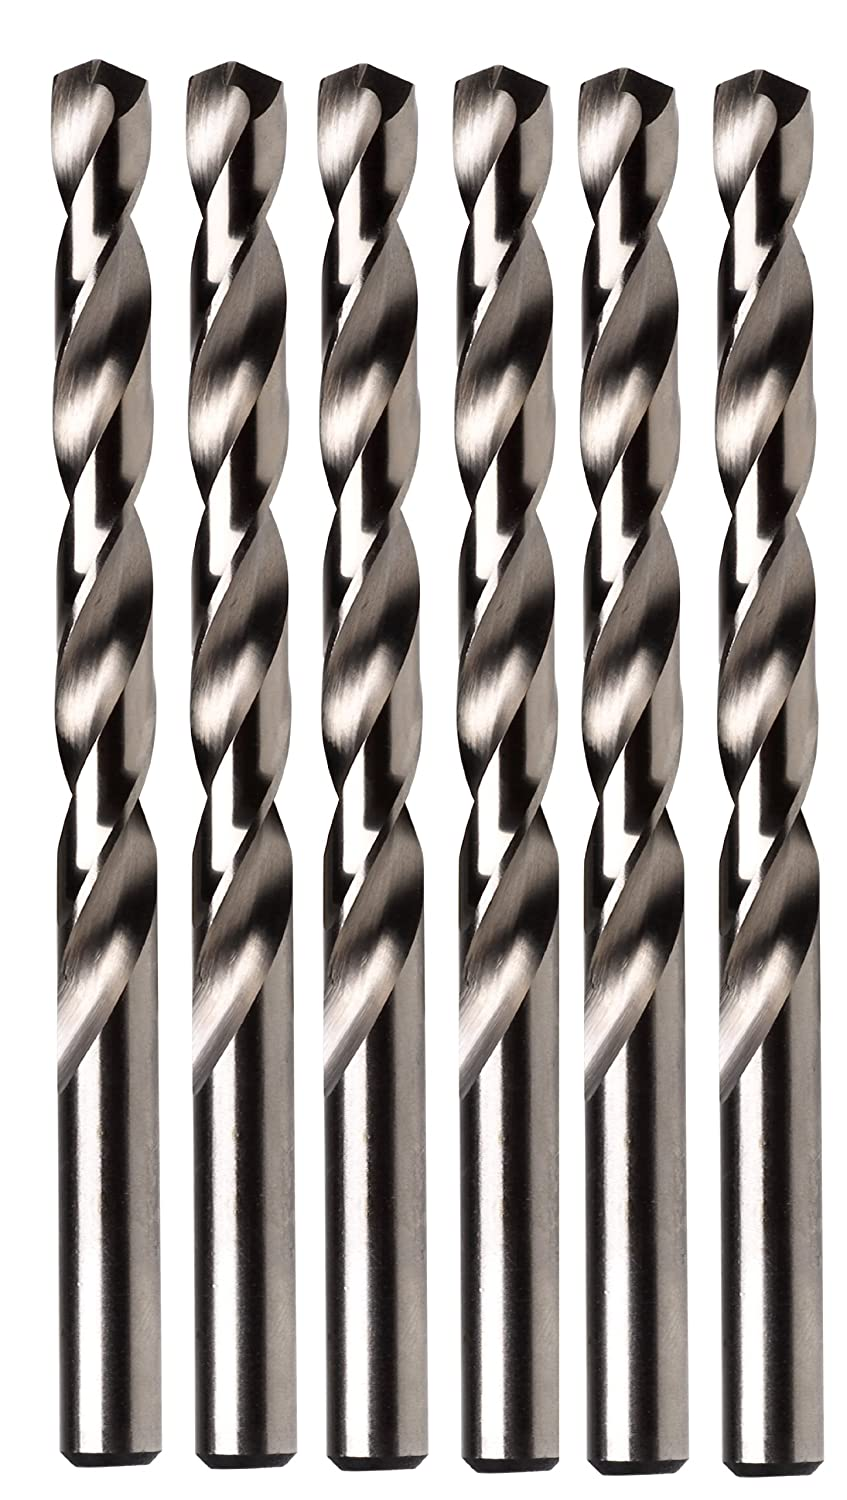 81YJ9m3Ju6L. SL1500 Best Drill Bit Shank Set Reviews (Hex, SDS & Reduced)